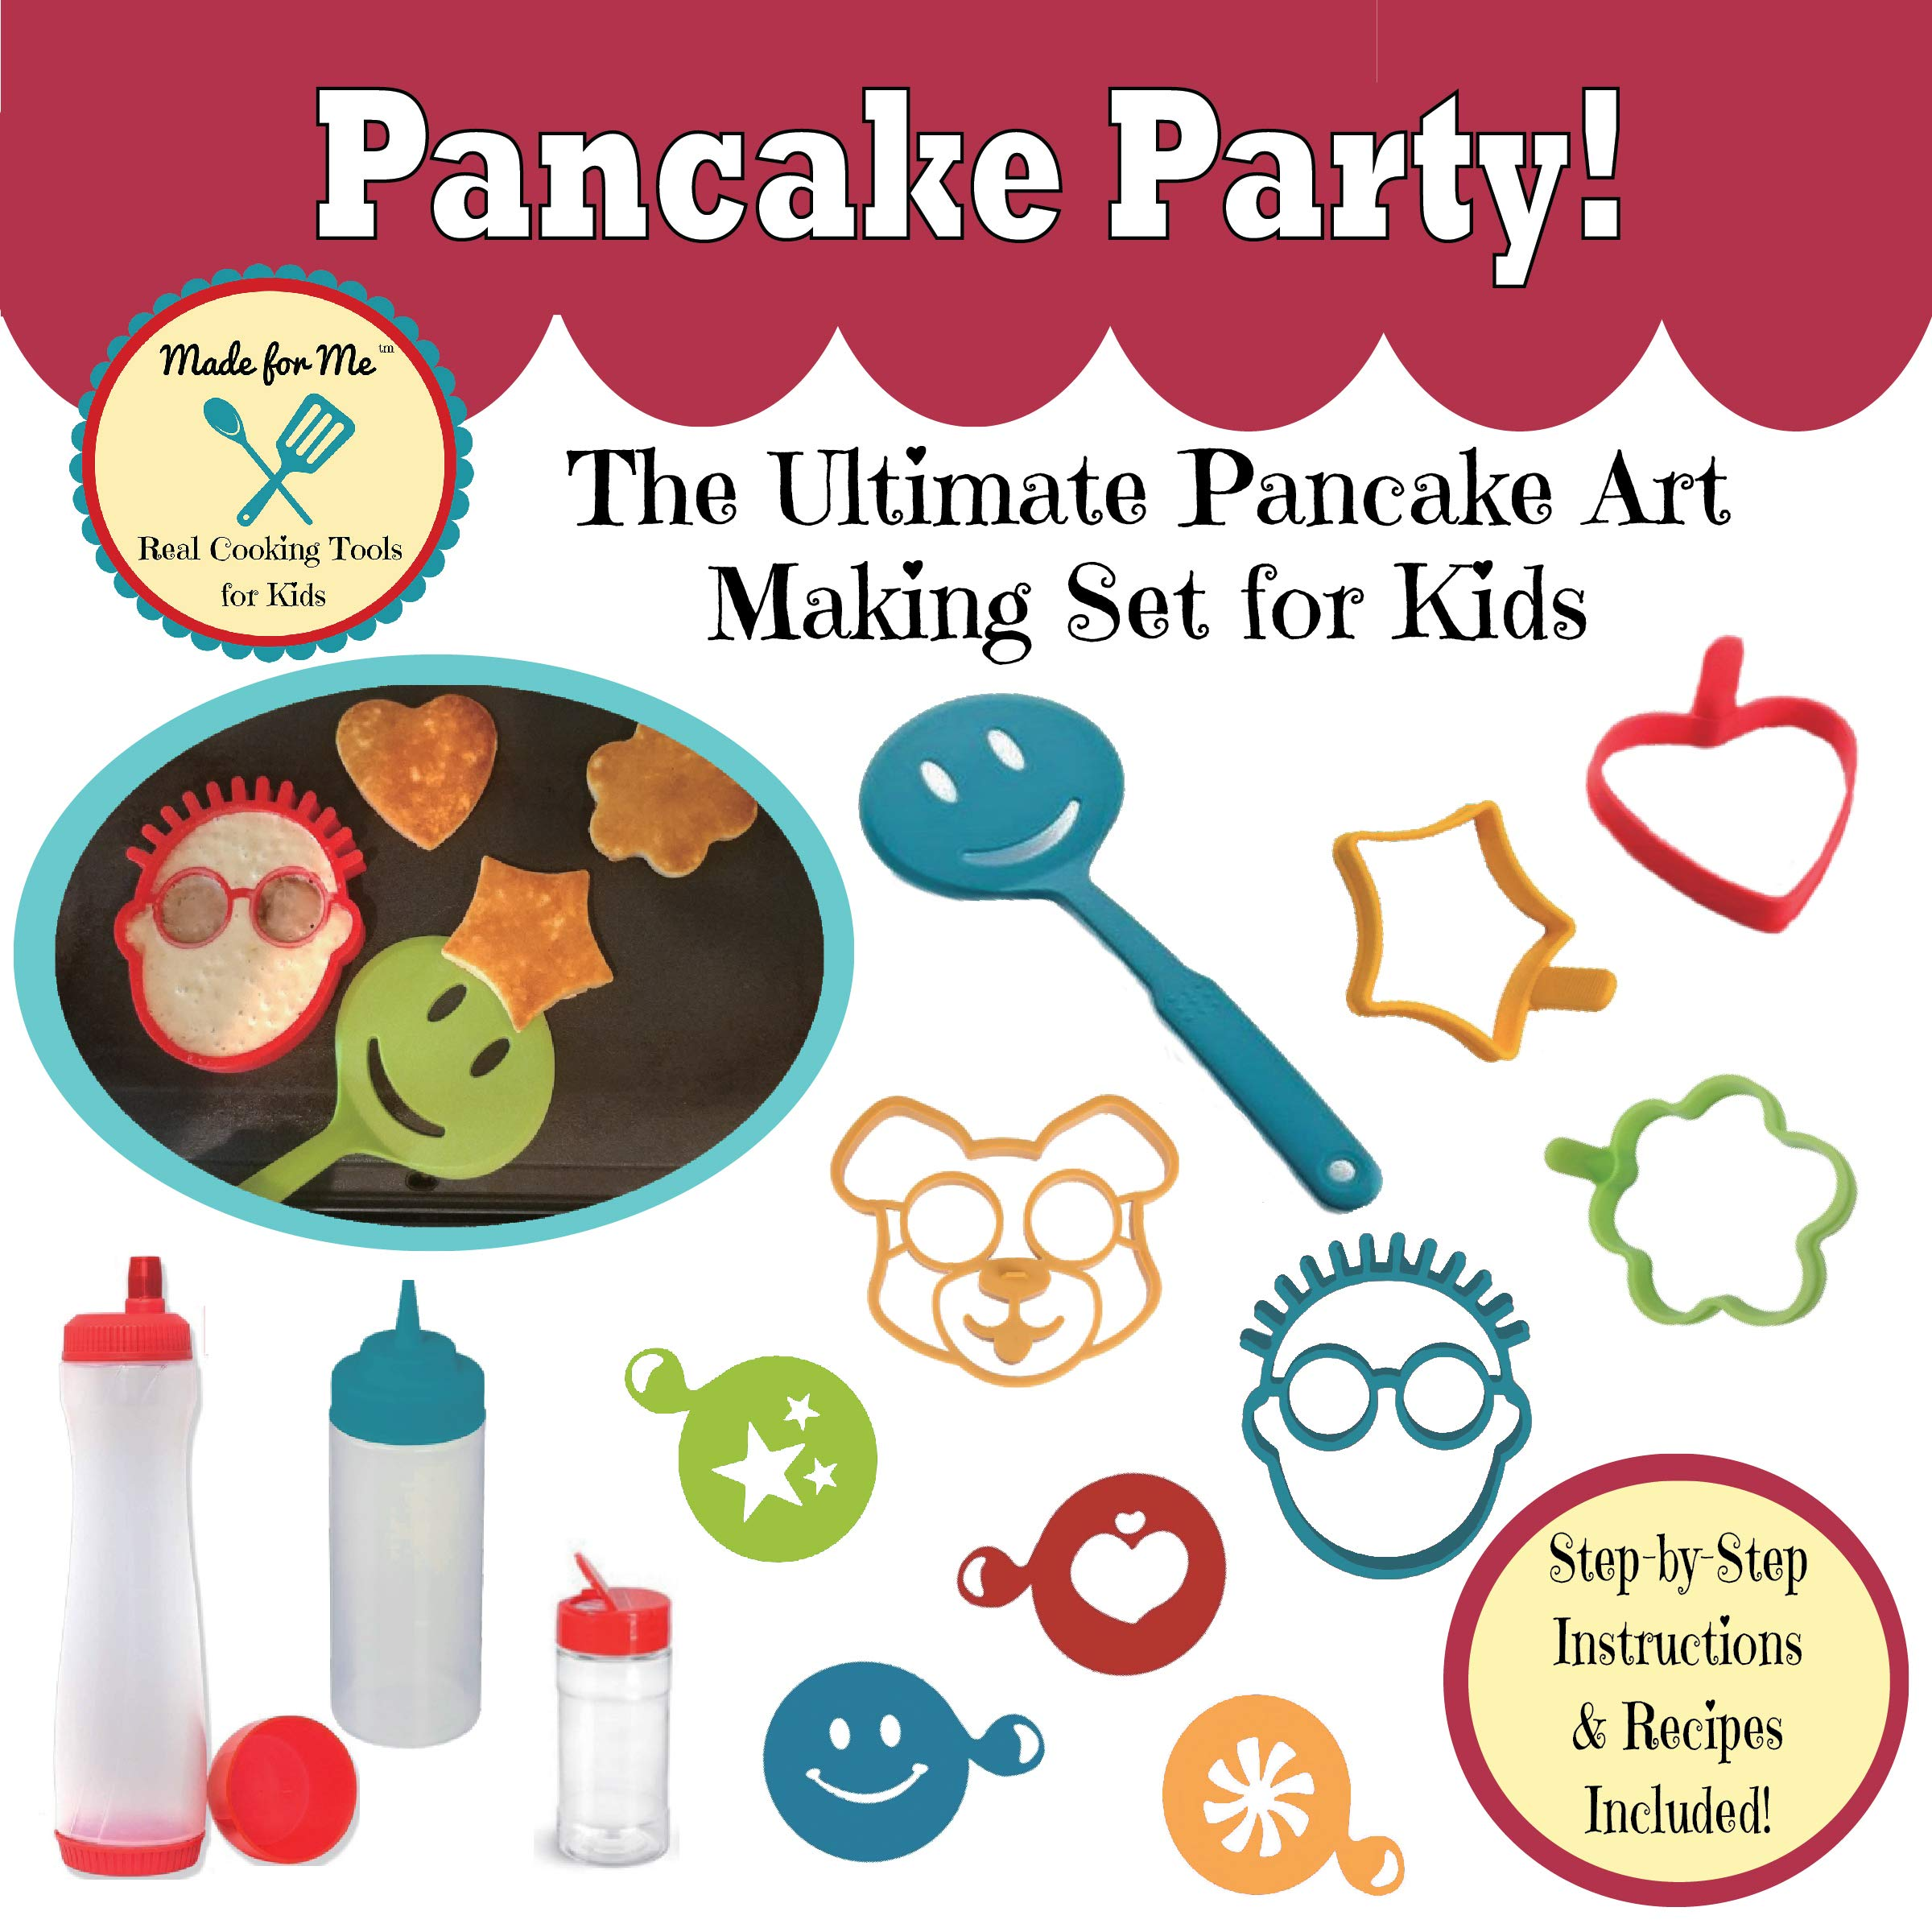 Pancake Party! The Ultimate Pancake Art Making Set for Kids - SUMMER SALE! / REG $35.95 Excellent culinary educational gift for children, young bakers, chefs! baking, cooking kit for boys and girls! by Made for Me (Image #1)